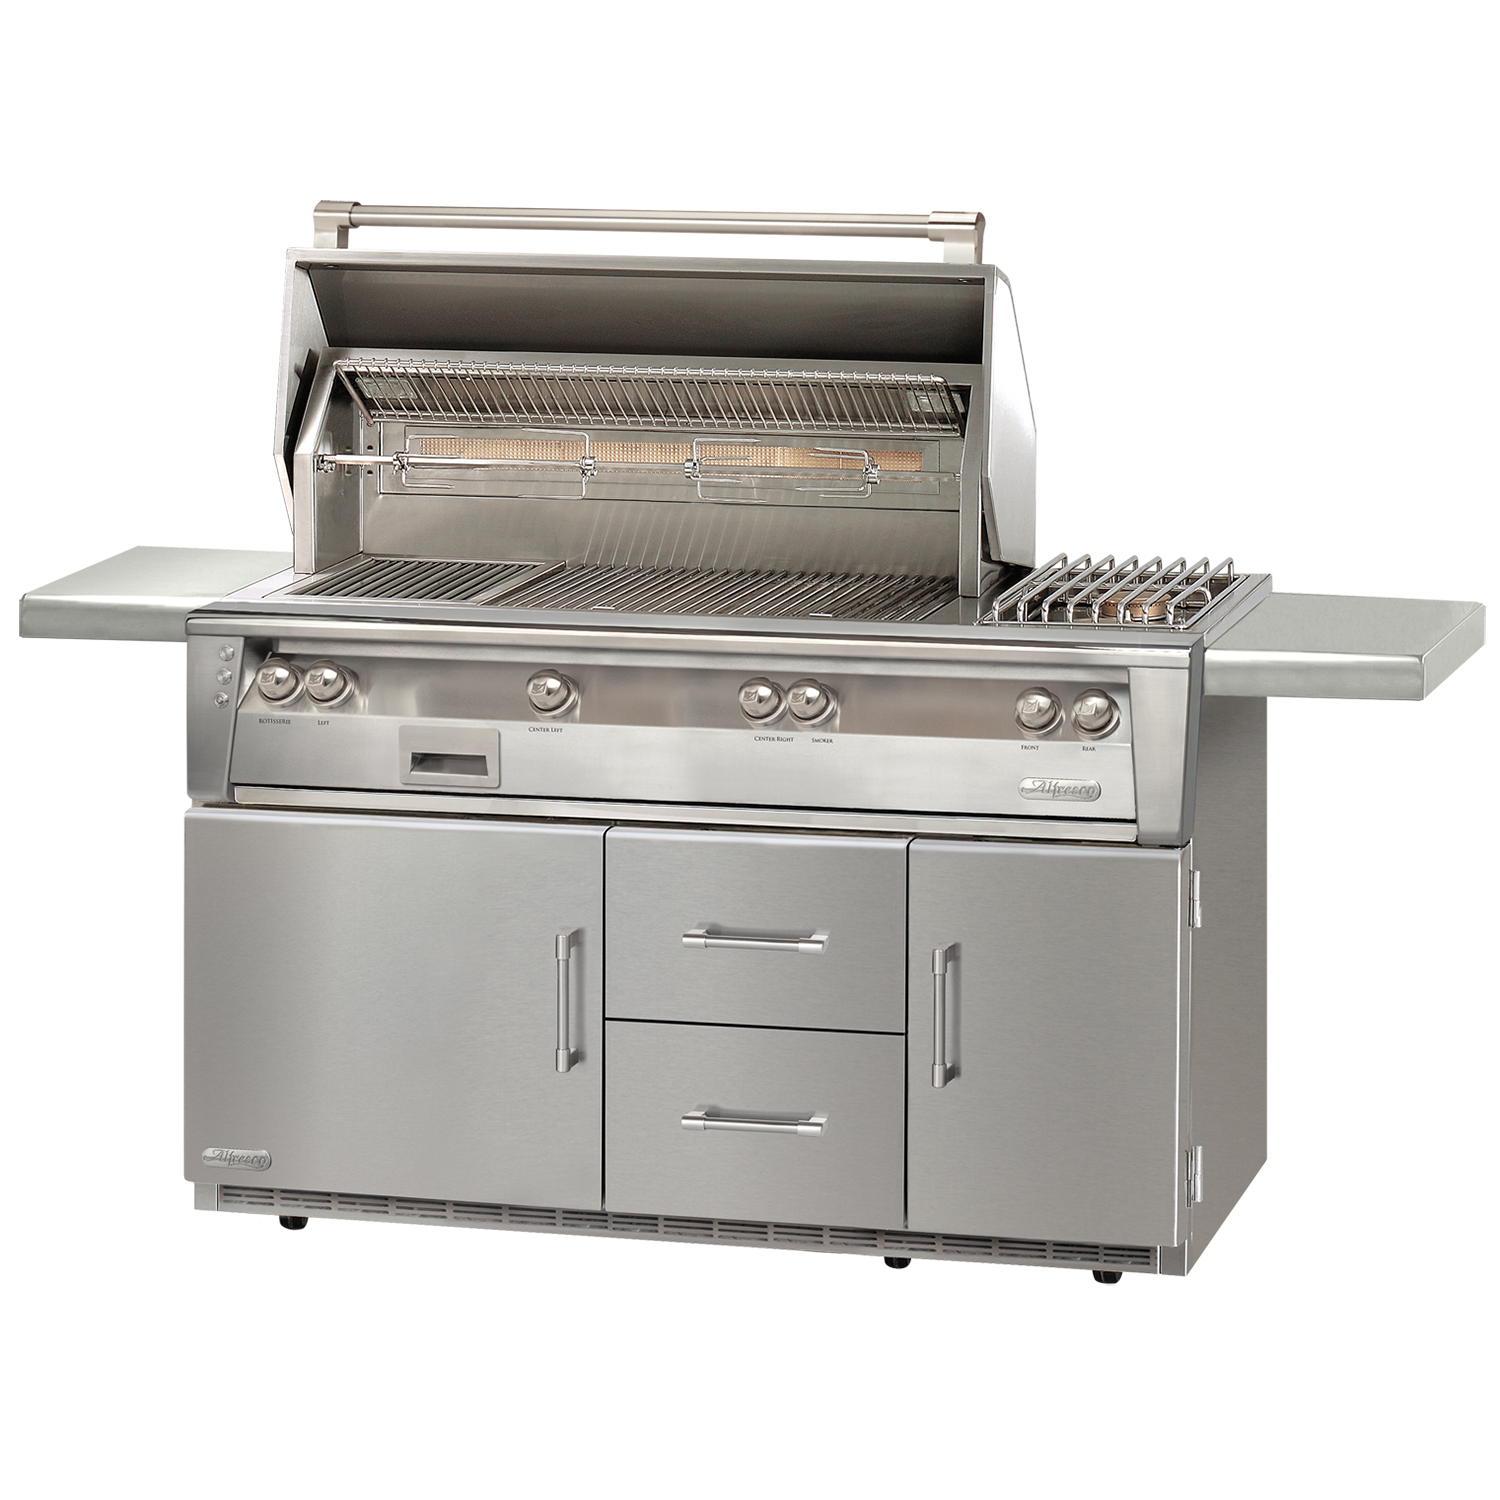 "56"" Alfresco ALXE Gas Grill w/ Sear Zone, Rotisserie & Side Burner On Refrigerated Cart, Liquid Propane"